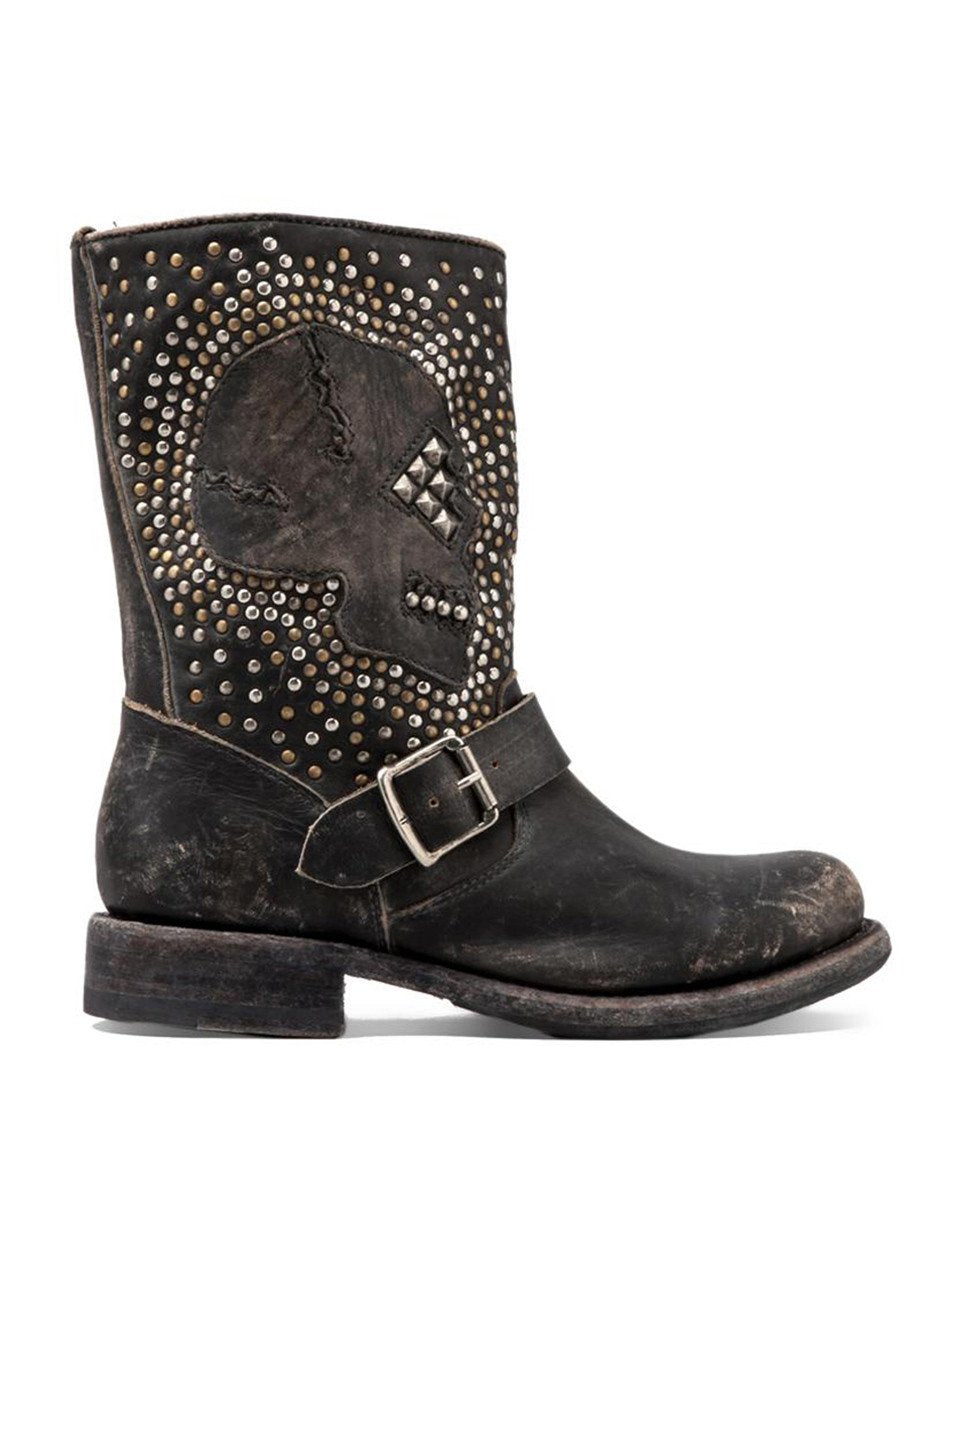 Jenna Skull Stud Short Boot - Kustom Label - 1